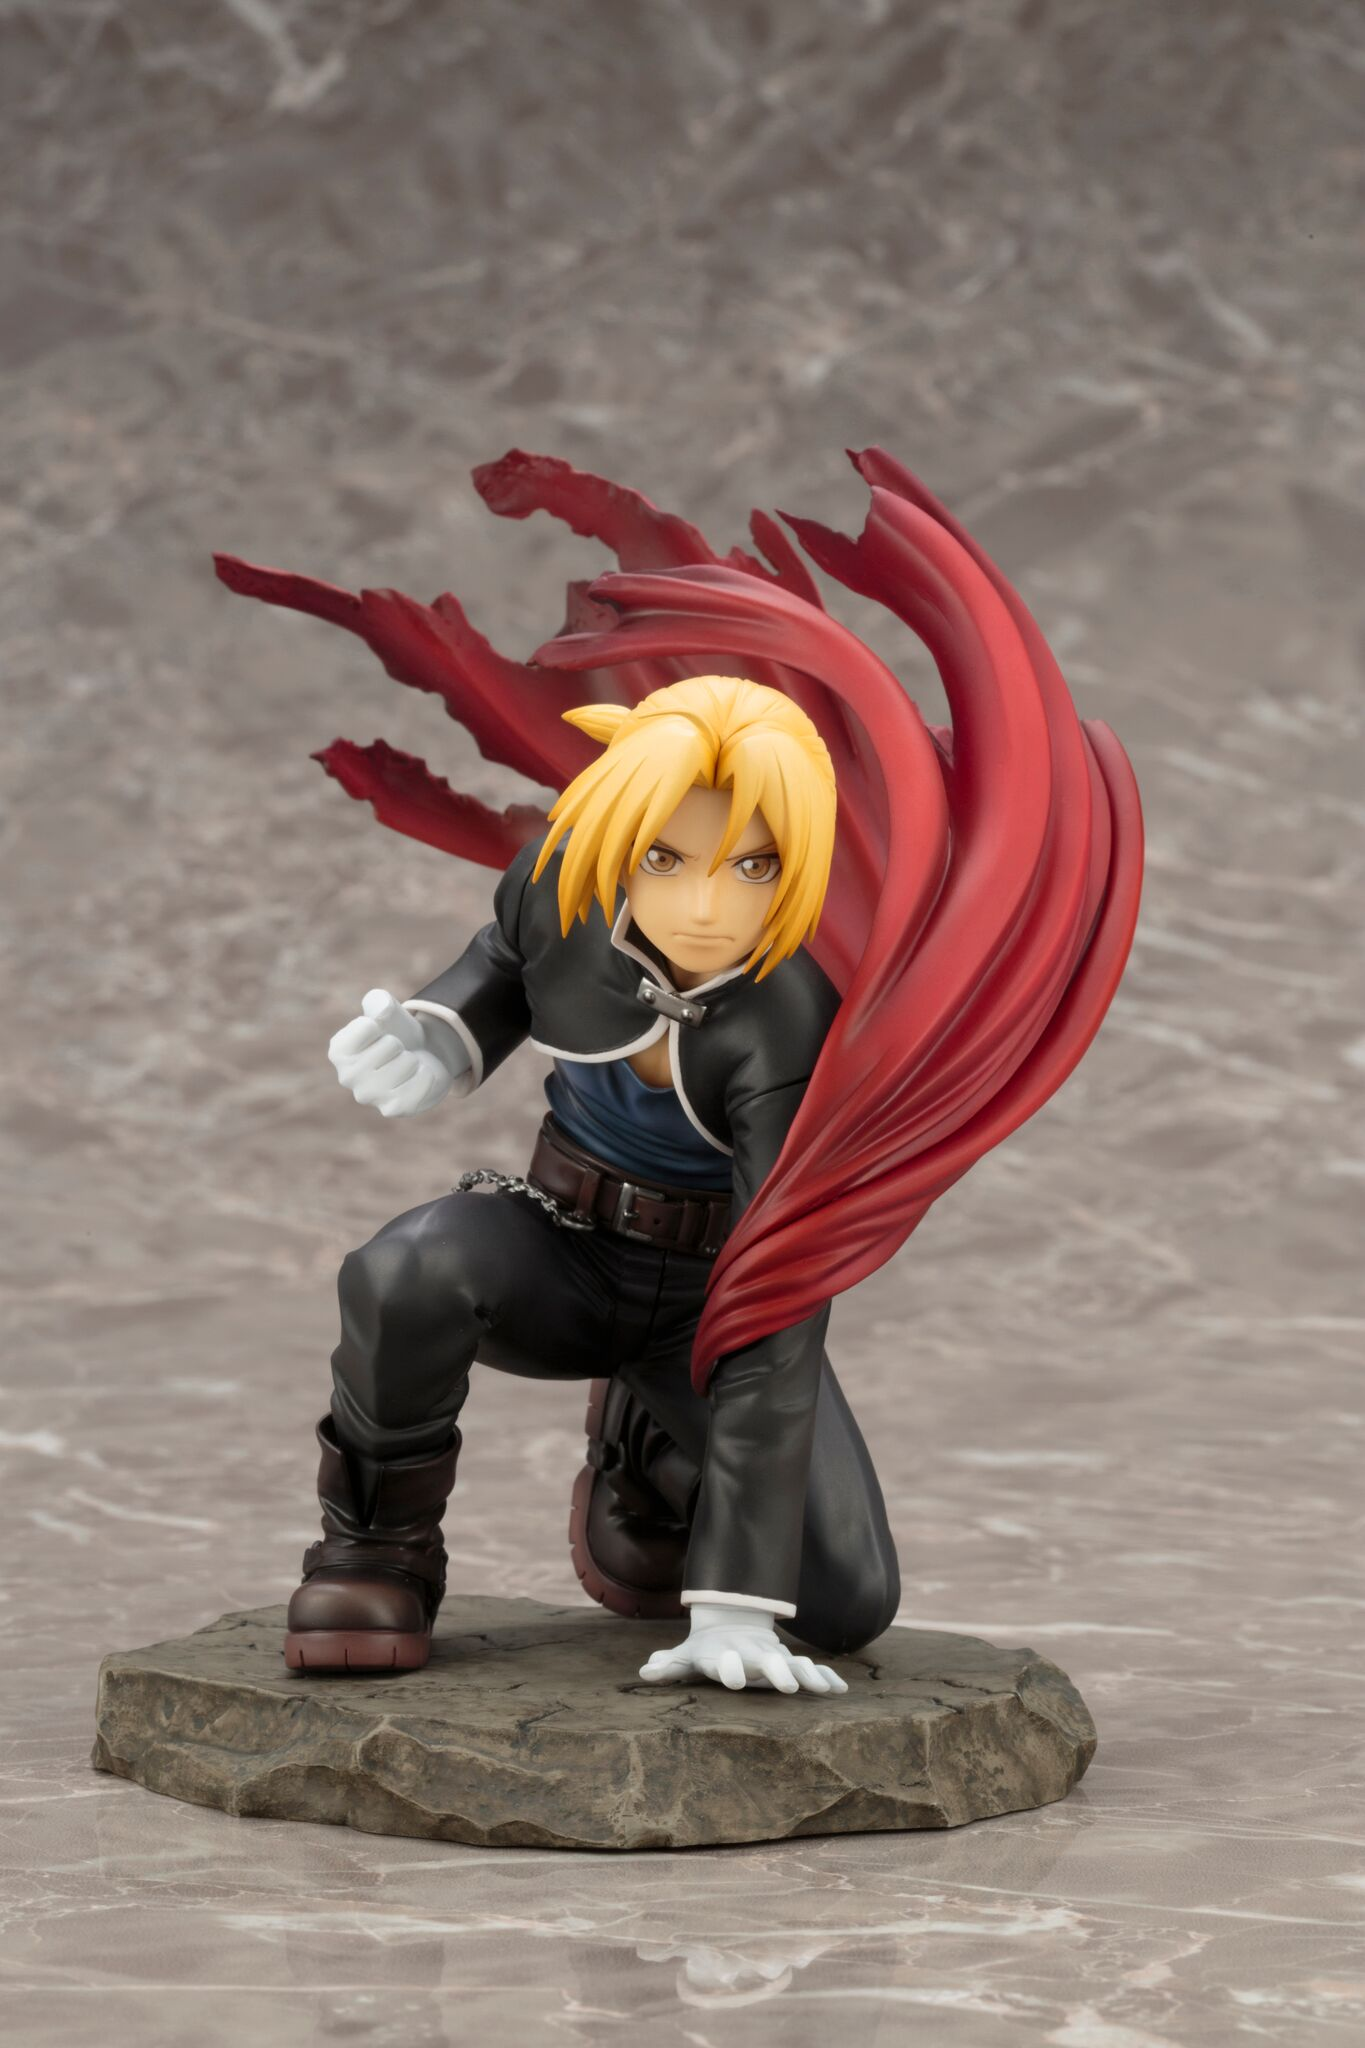 edward elric fullmetal alchemist figure. Black Bedroom Furniture Sets. Home Design Ideas